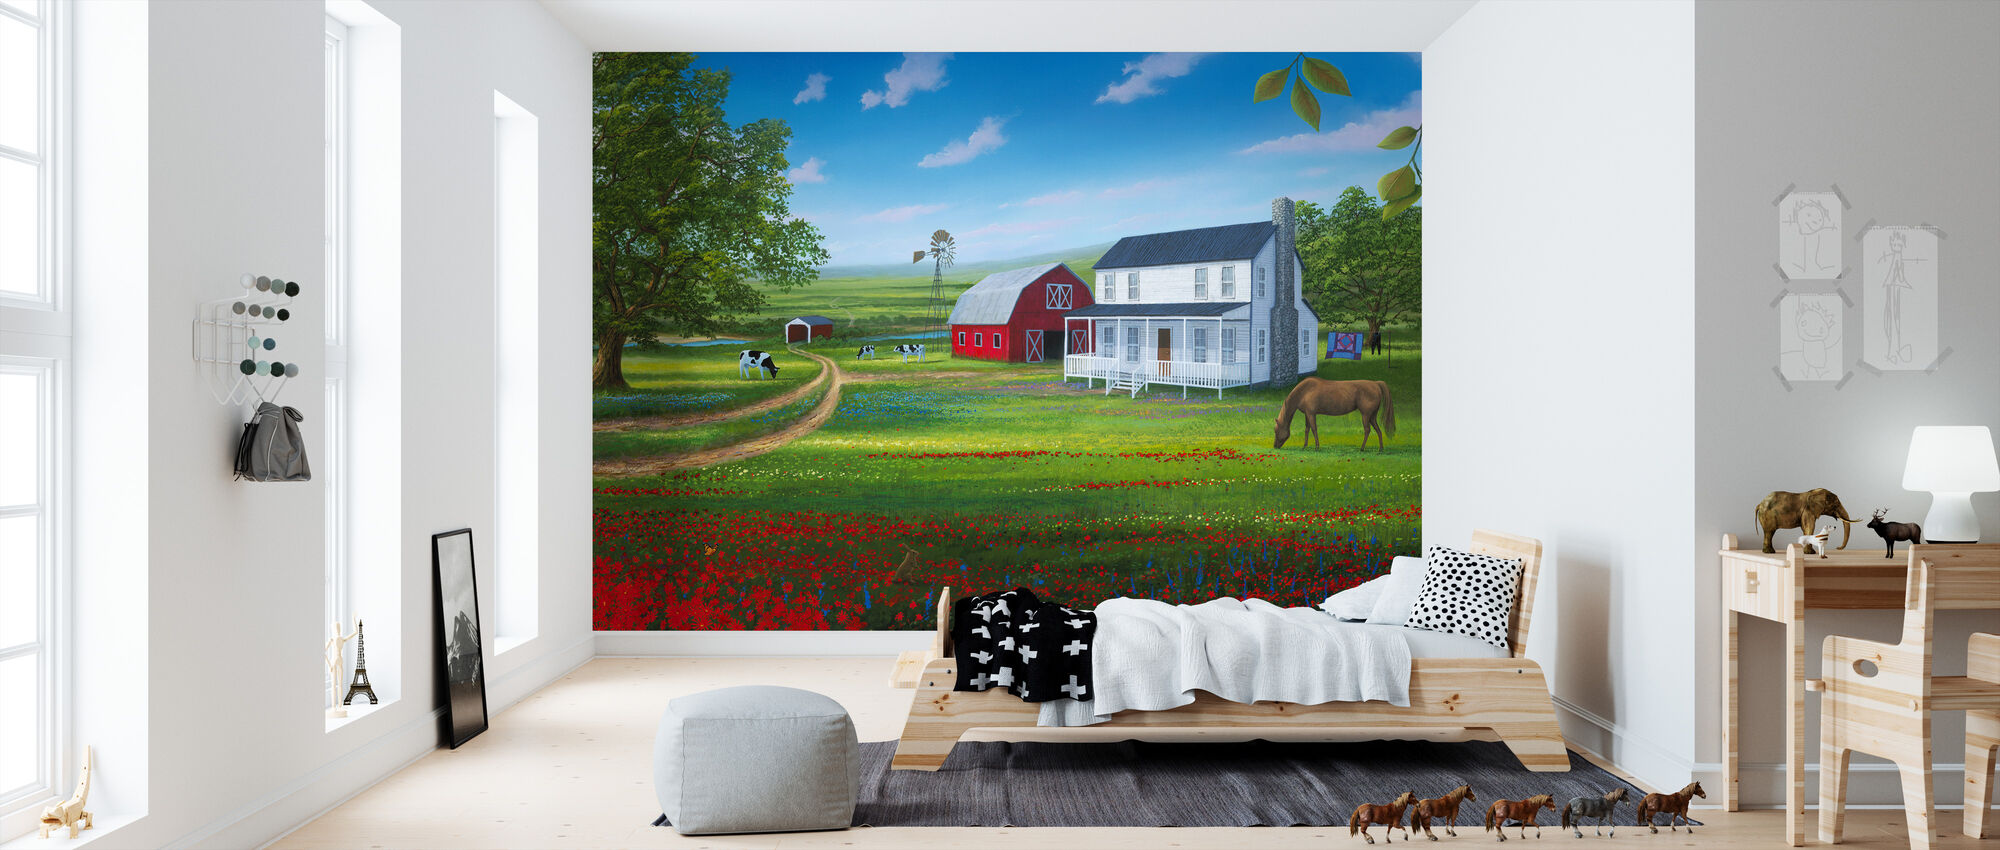 Country Living - Wallpaper - Kids Room